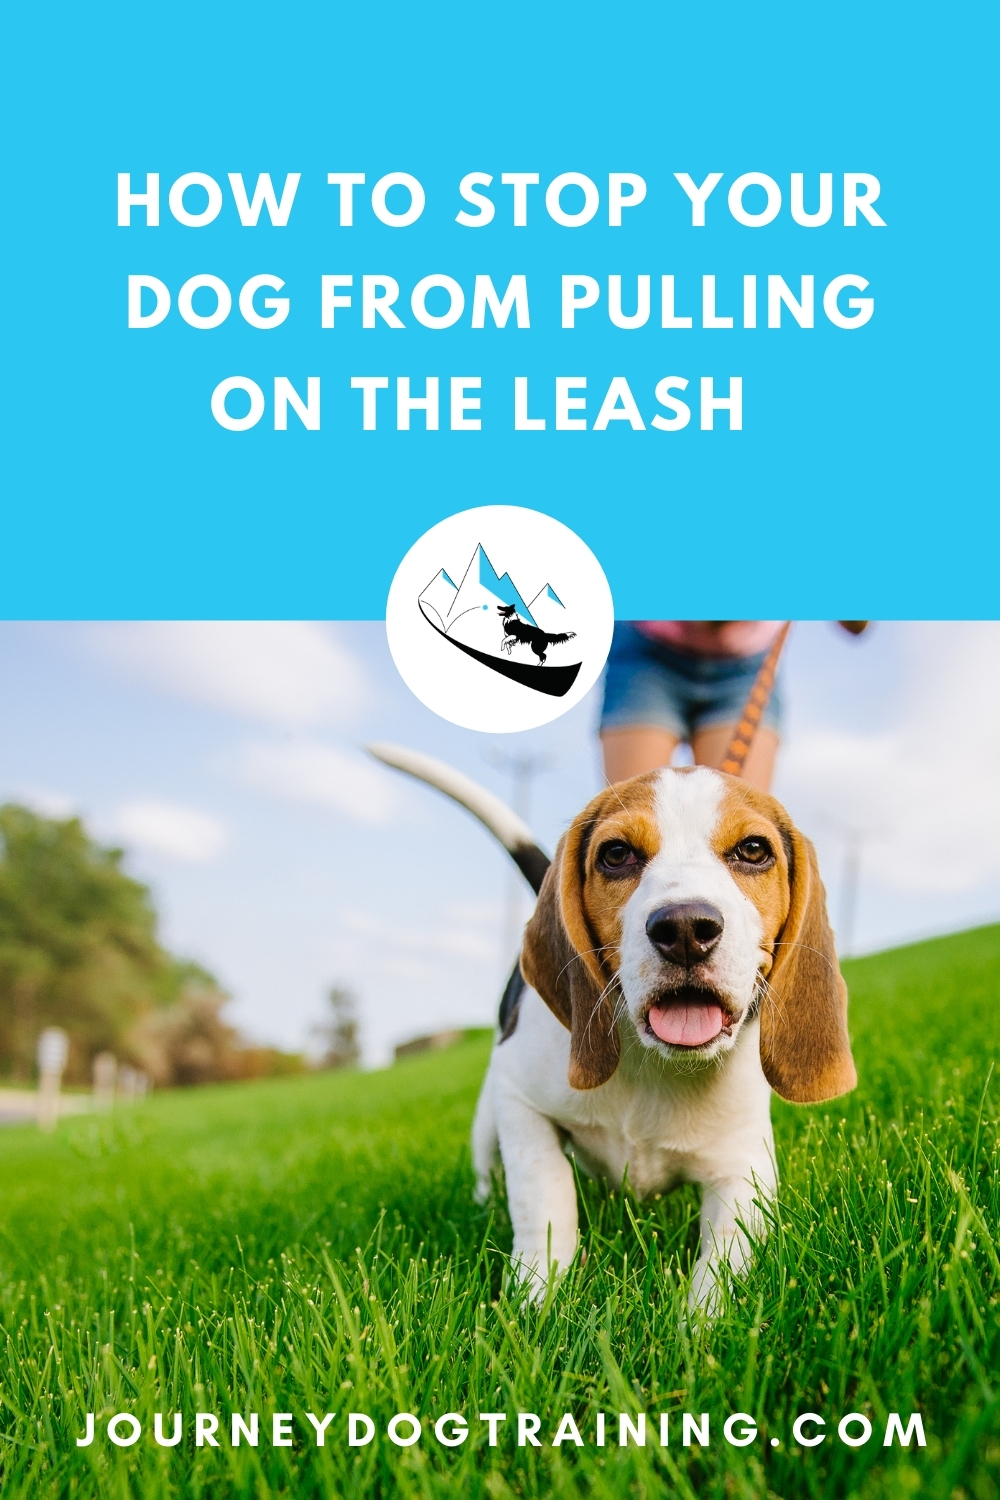 how to stop your dog from pulling on the leash | journeydogtraining.com